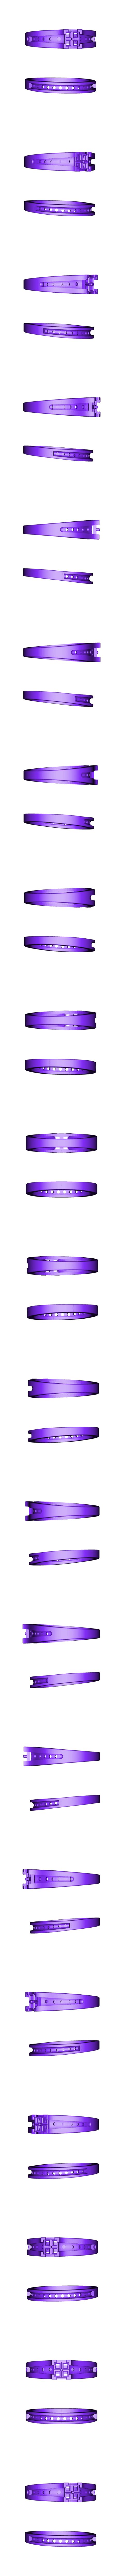 RG27114.stl Download free STL file Jewelry 3D CAD Model In STL Fromat • Design to 3D print, VR3D